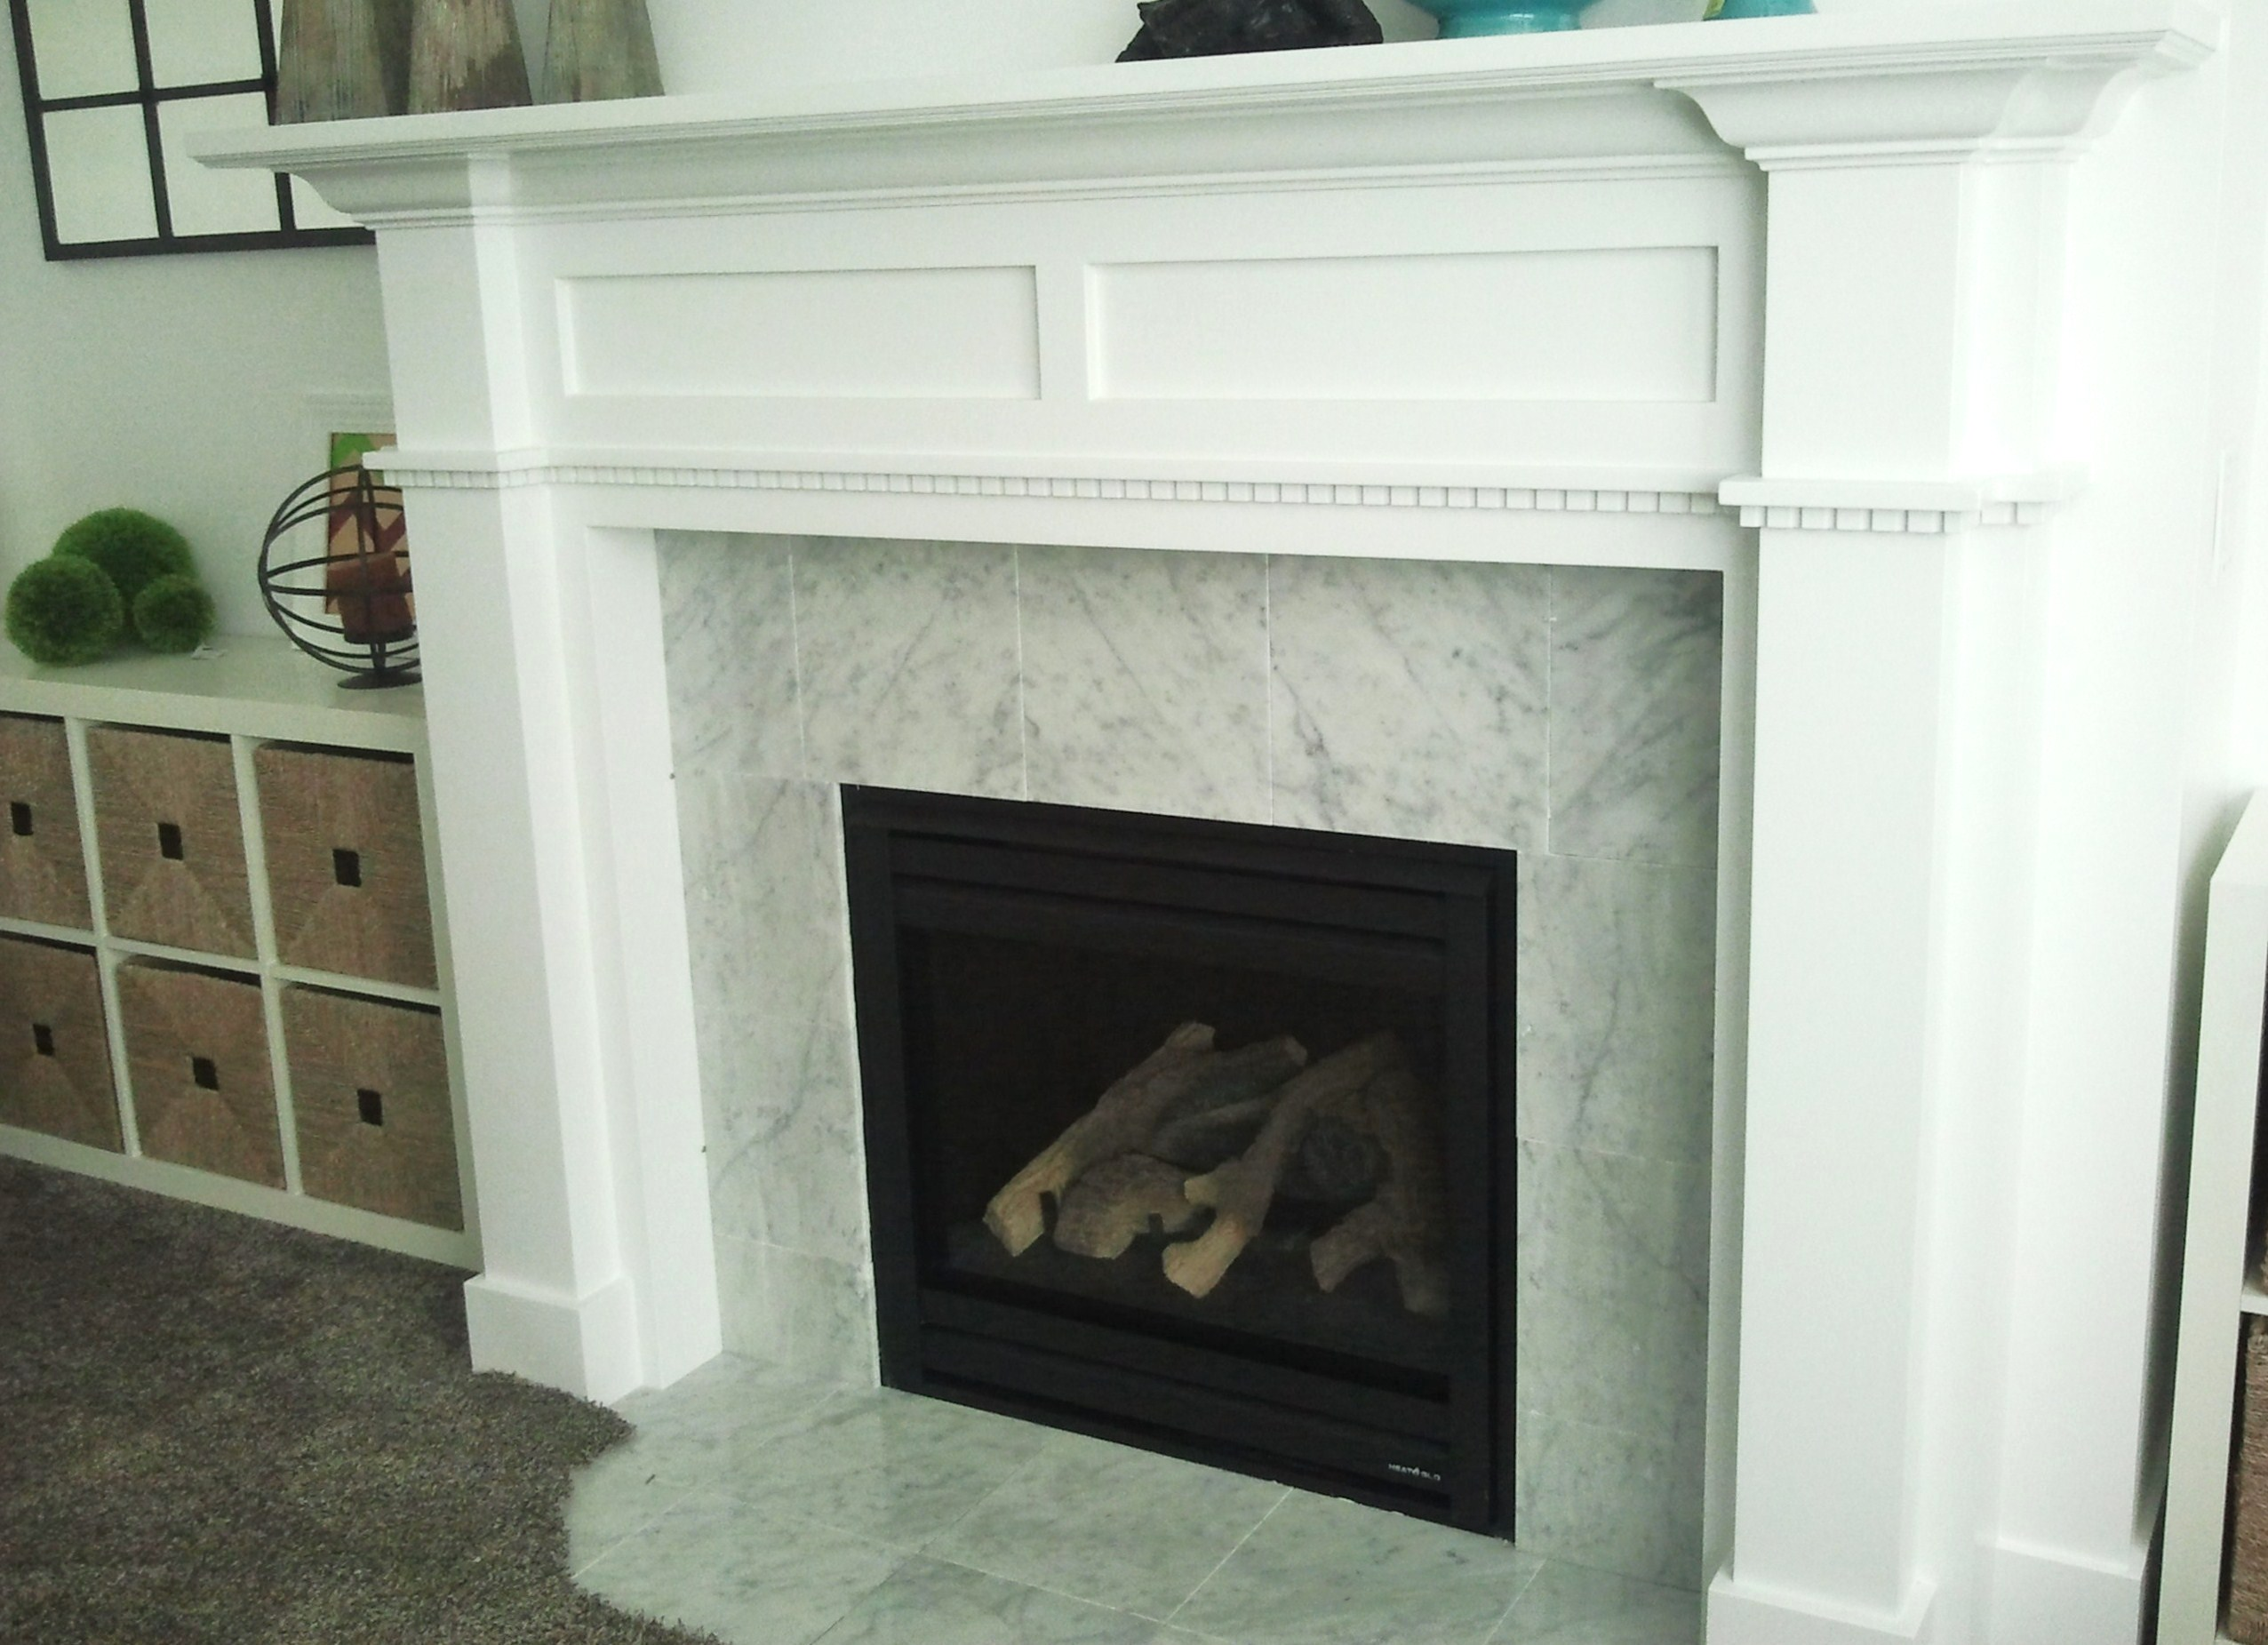 Ideas on Diy Fireplace Mantel: DIY Fireplace Mantel And Surround